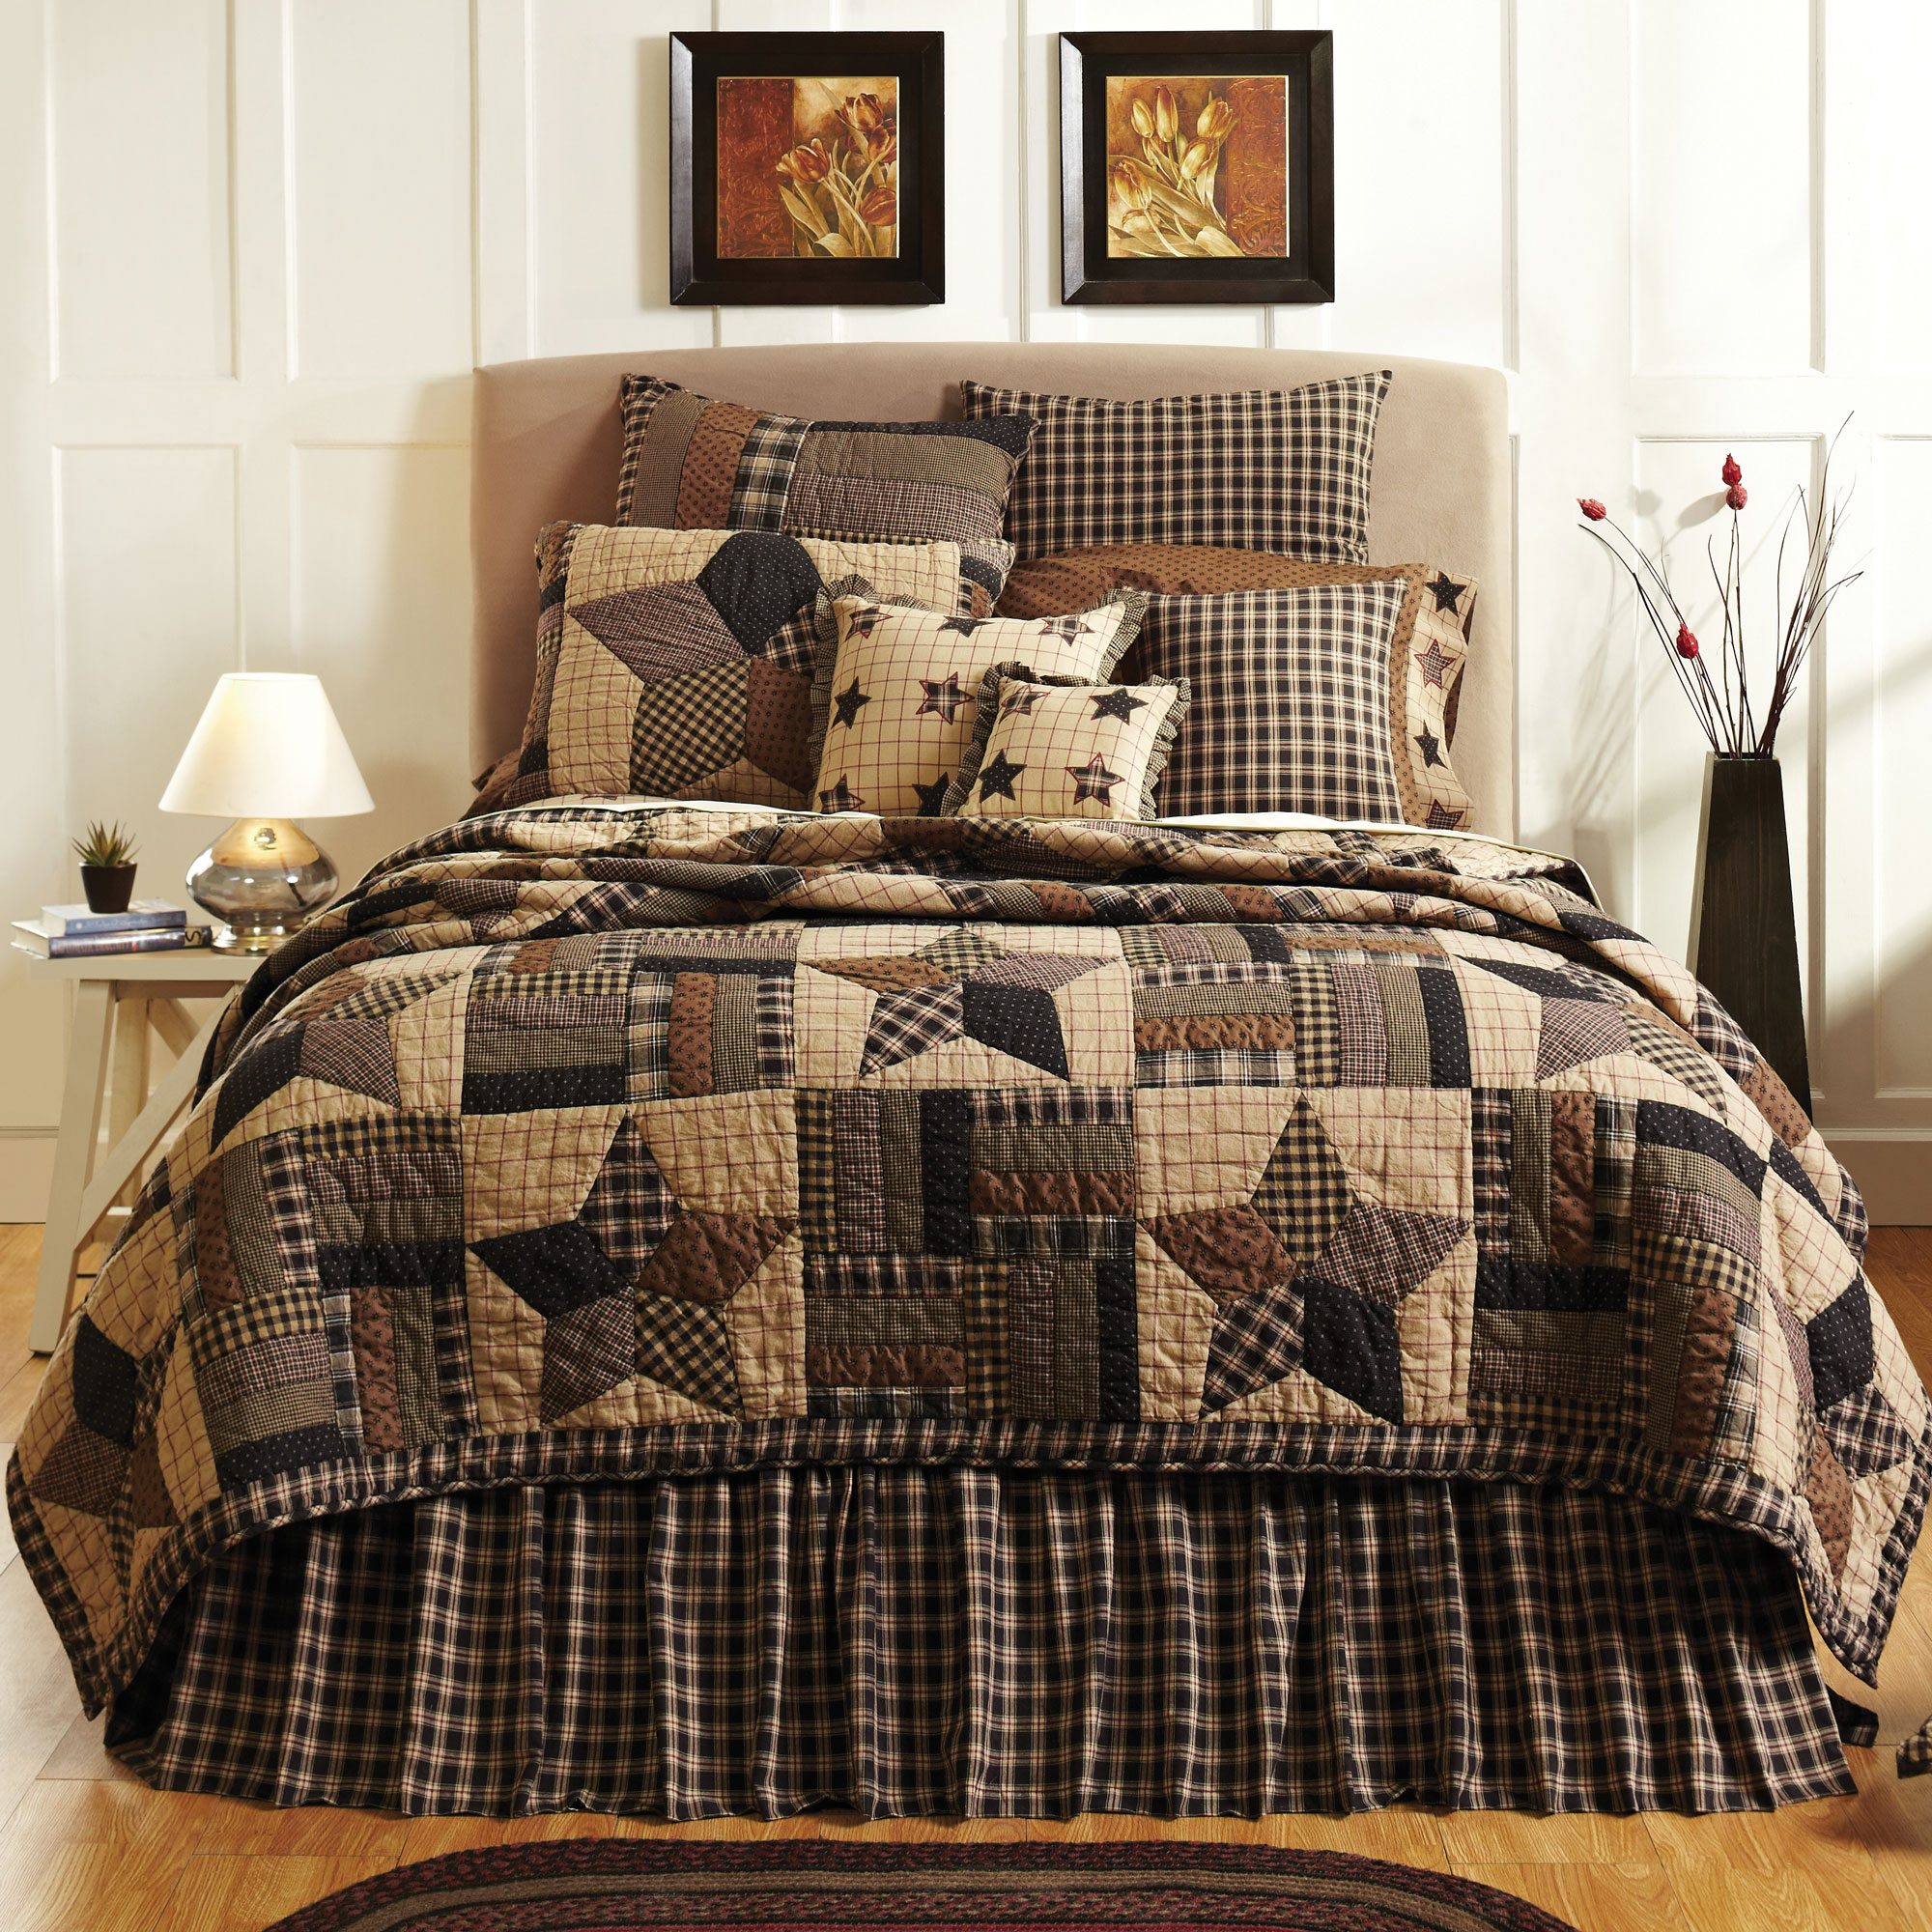 Bingham Star 7 Piece Country Quilt Set - Walmart.com : country star quilt - Adamdwight.com